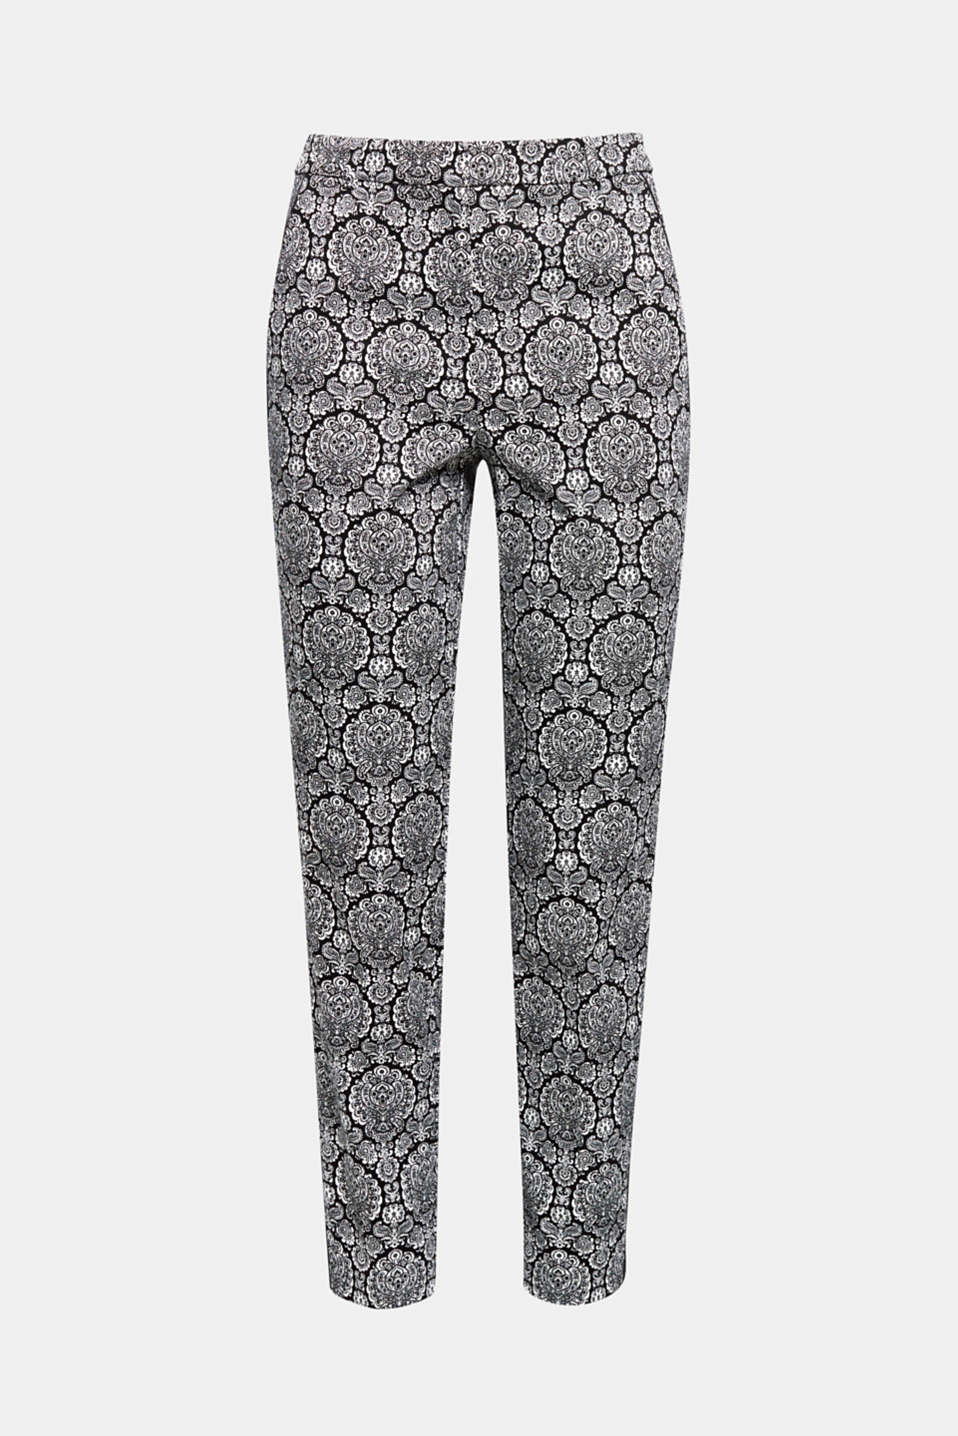 The firmer stretchy fabric of these fashionable, cropped trousers bring the stylish print perfectly to the fore!